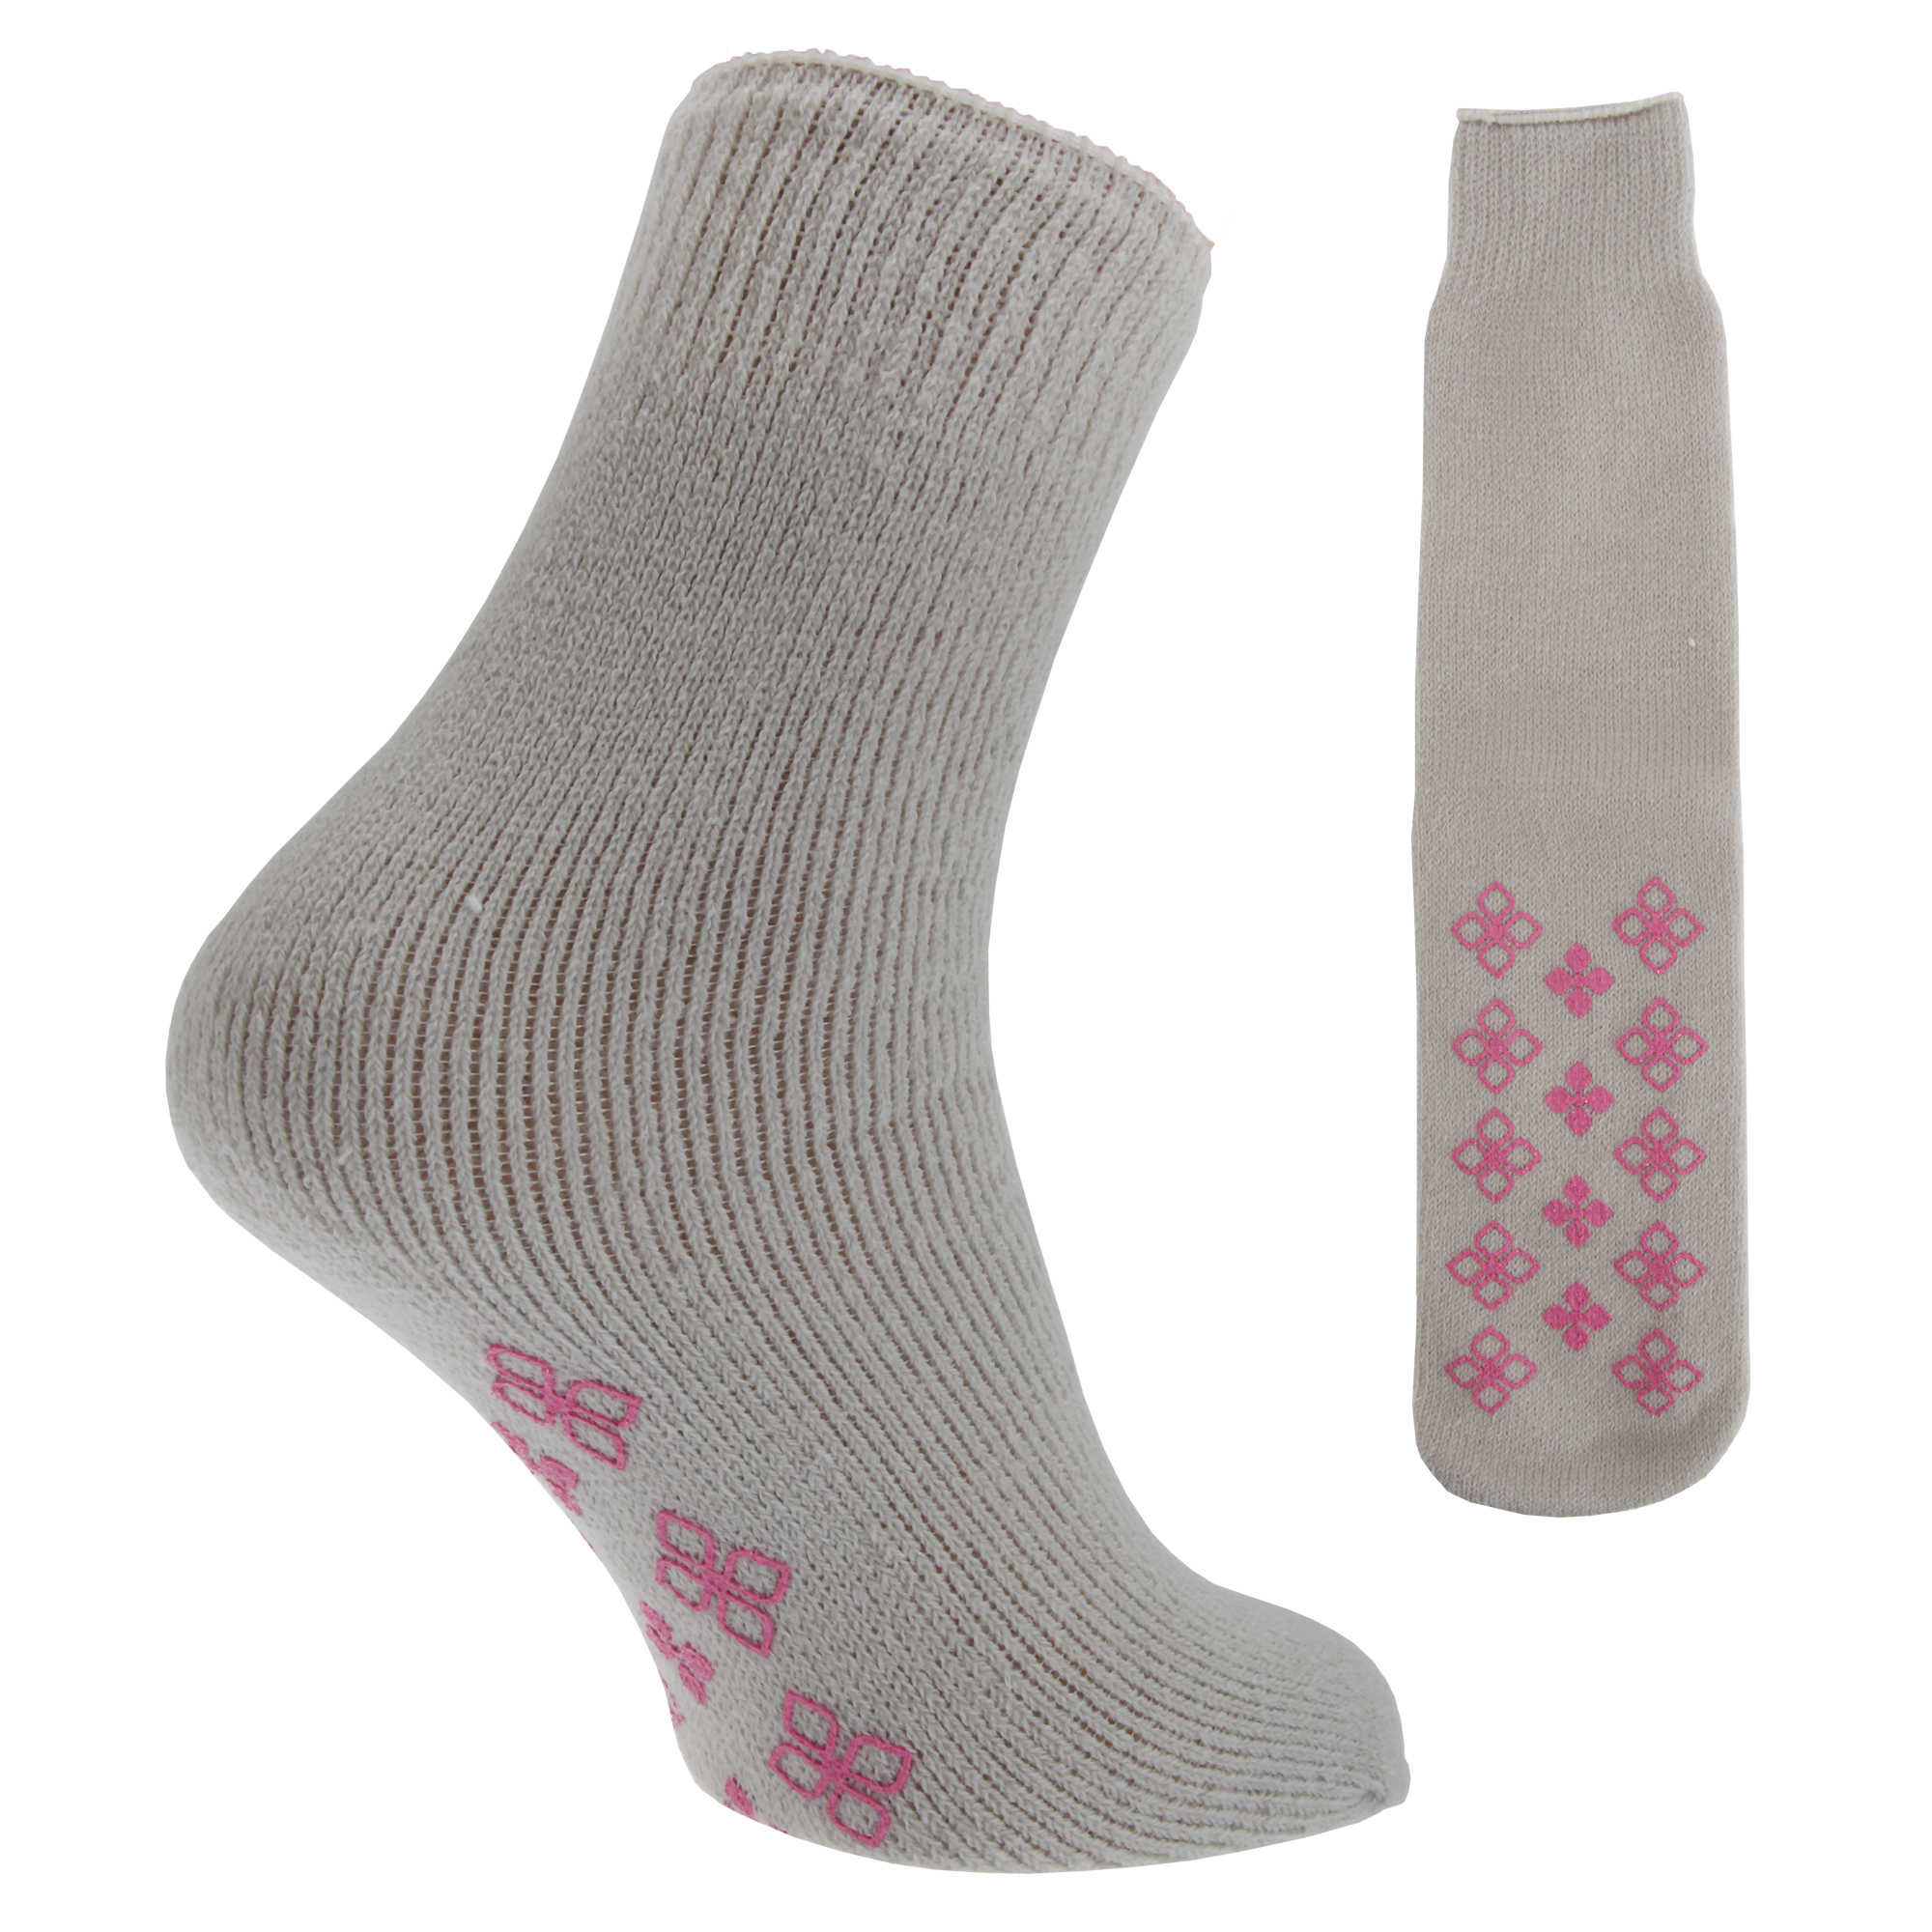 Shop our selection of adidas women's socks at downloadsolutionspa5tr.gq See the latest styles of women's socks from adidas.